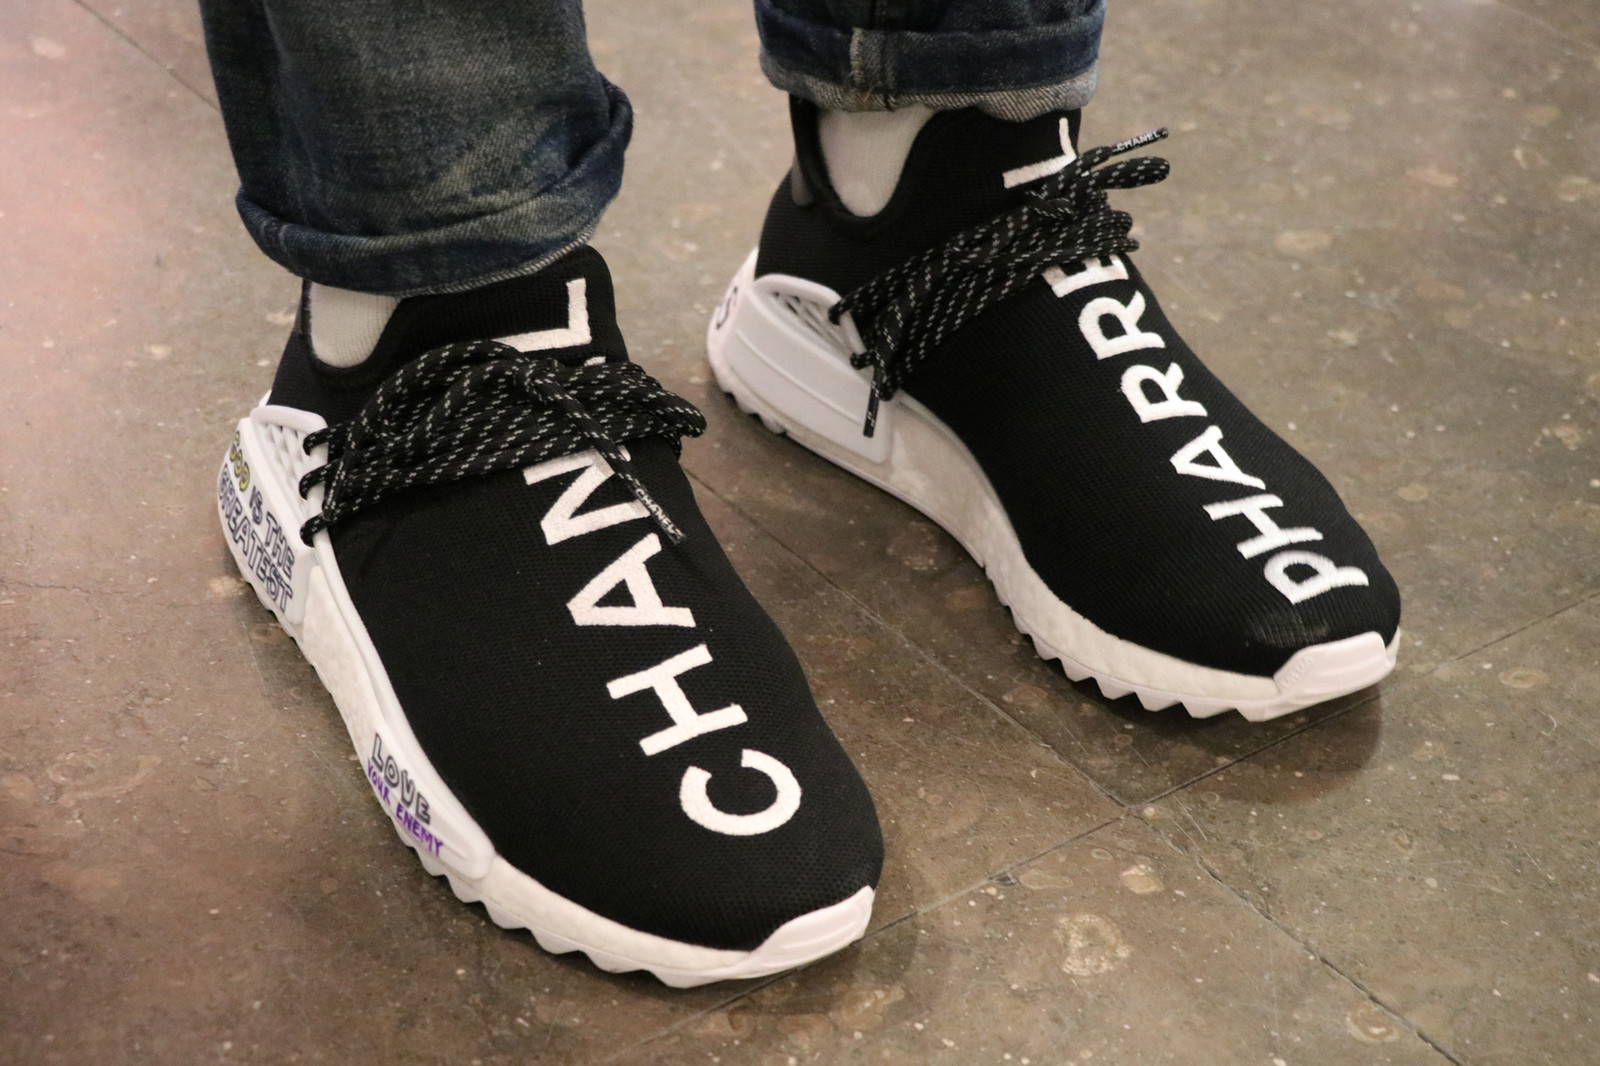 half off a8cab 8058b Chanel x adidas Originals Hu NMD On-Feet Look | HYPEBEAST